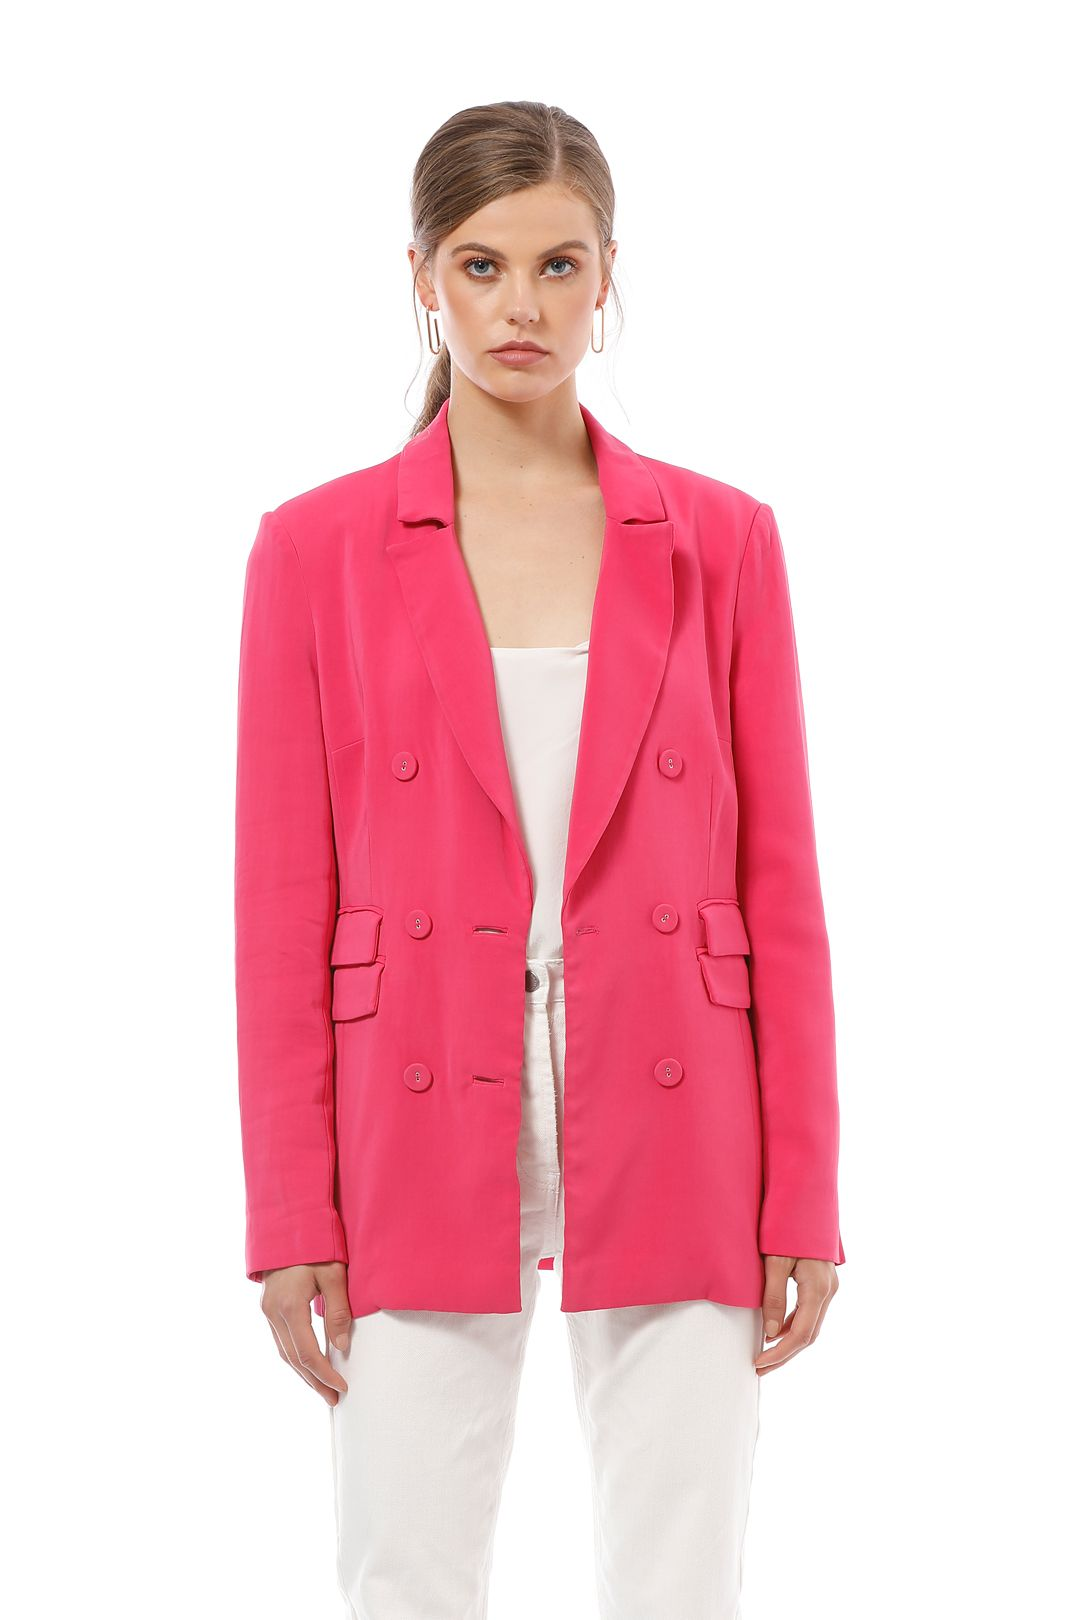 CMEO Collective - Own Light Blazer - Pink - Close Up